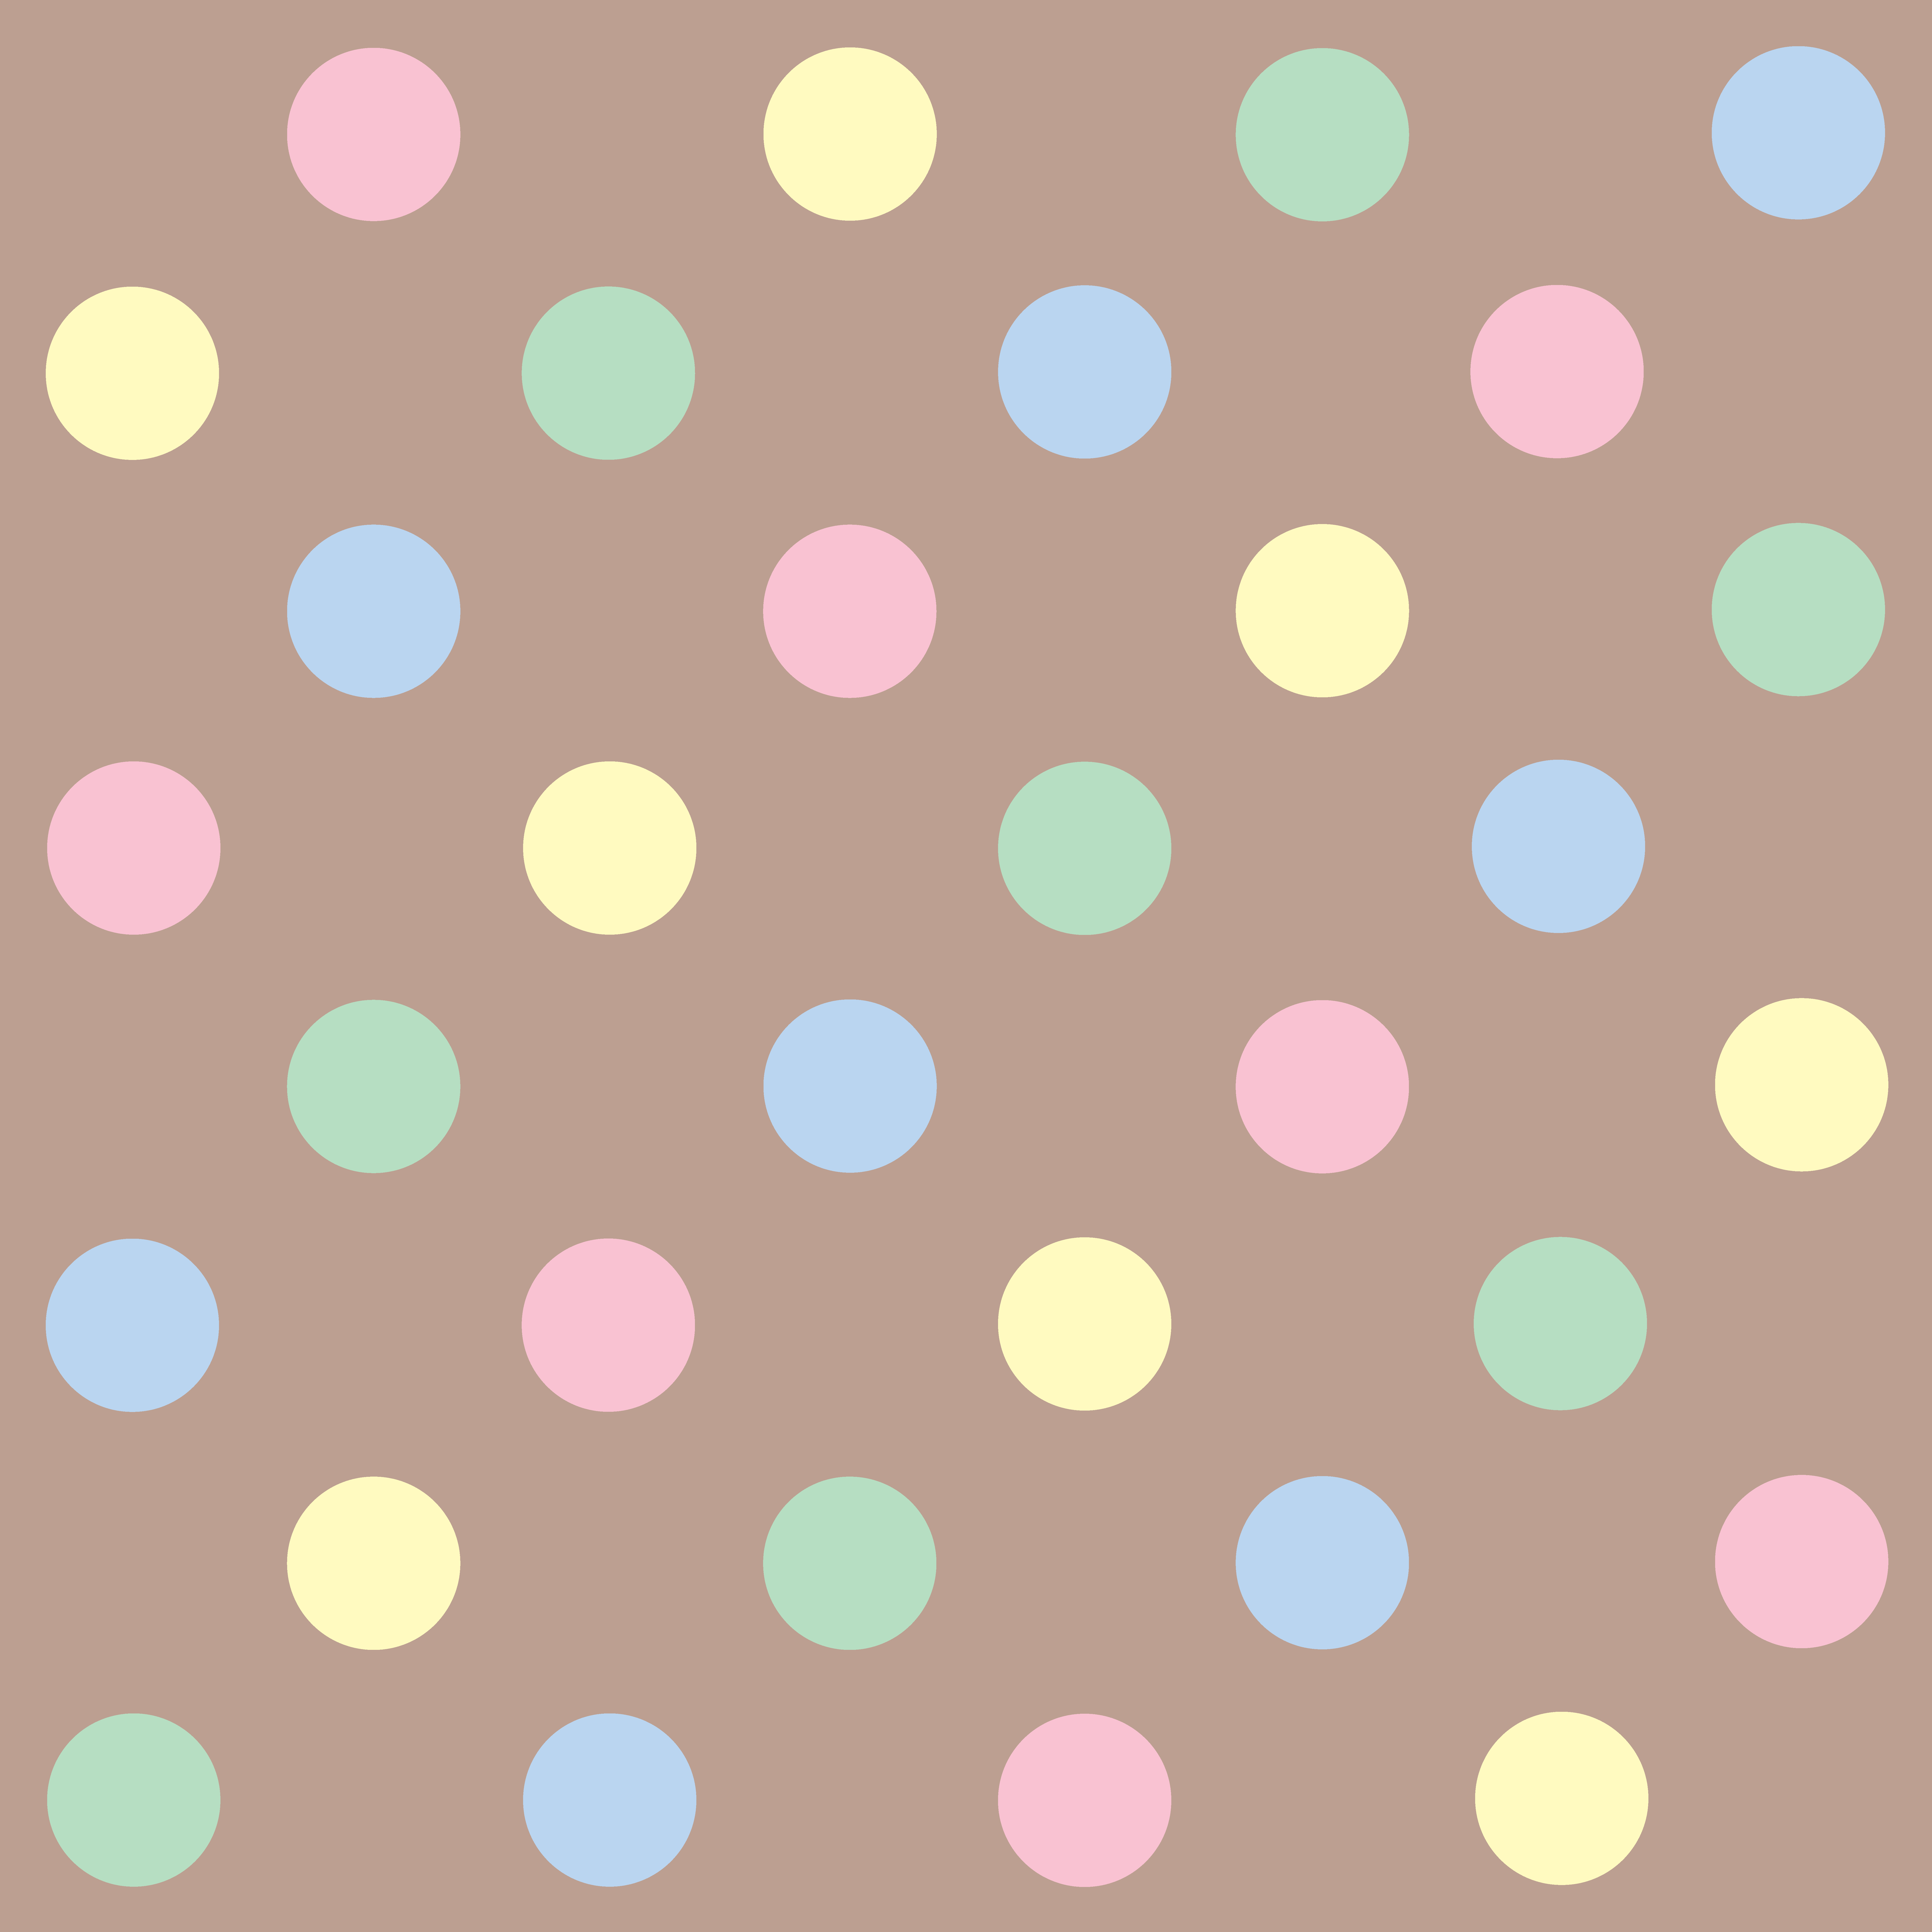 Polka dot pattern clipart picture freeuse library Cute Pastel Polka Dots Pattern - Free Clip Art picture freeuse library